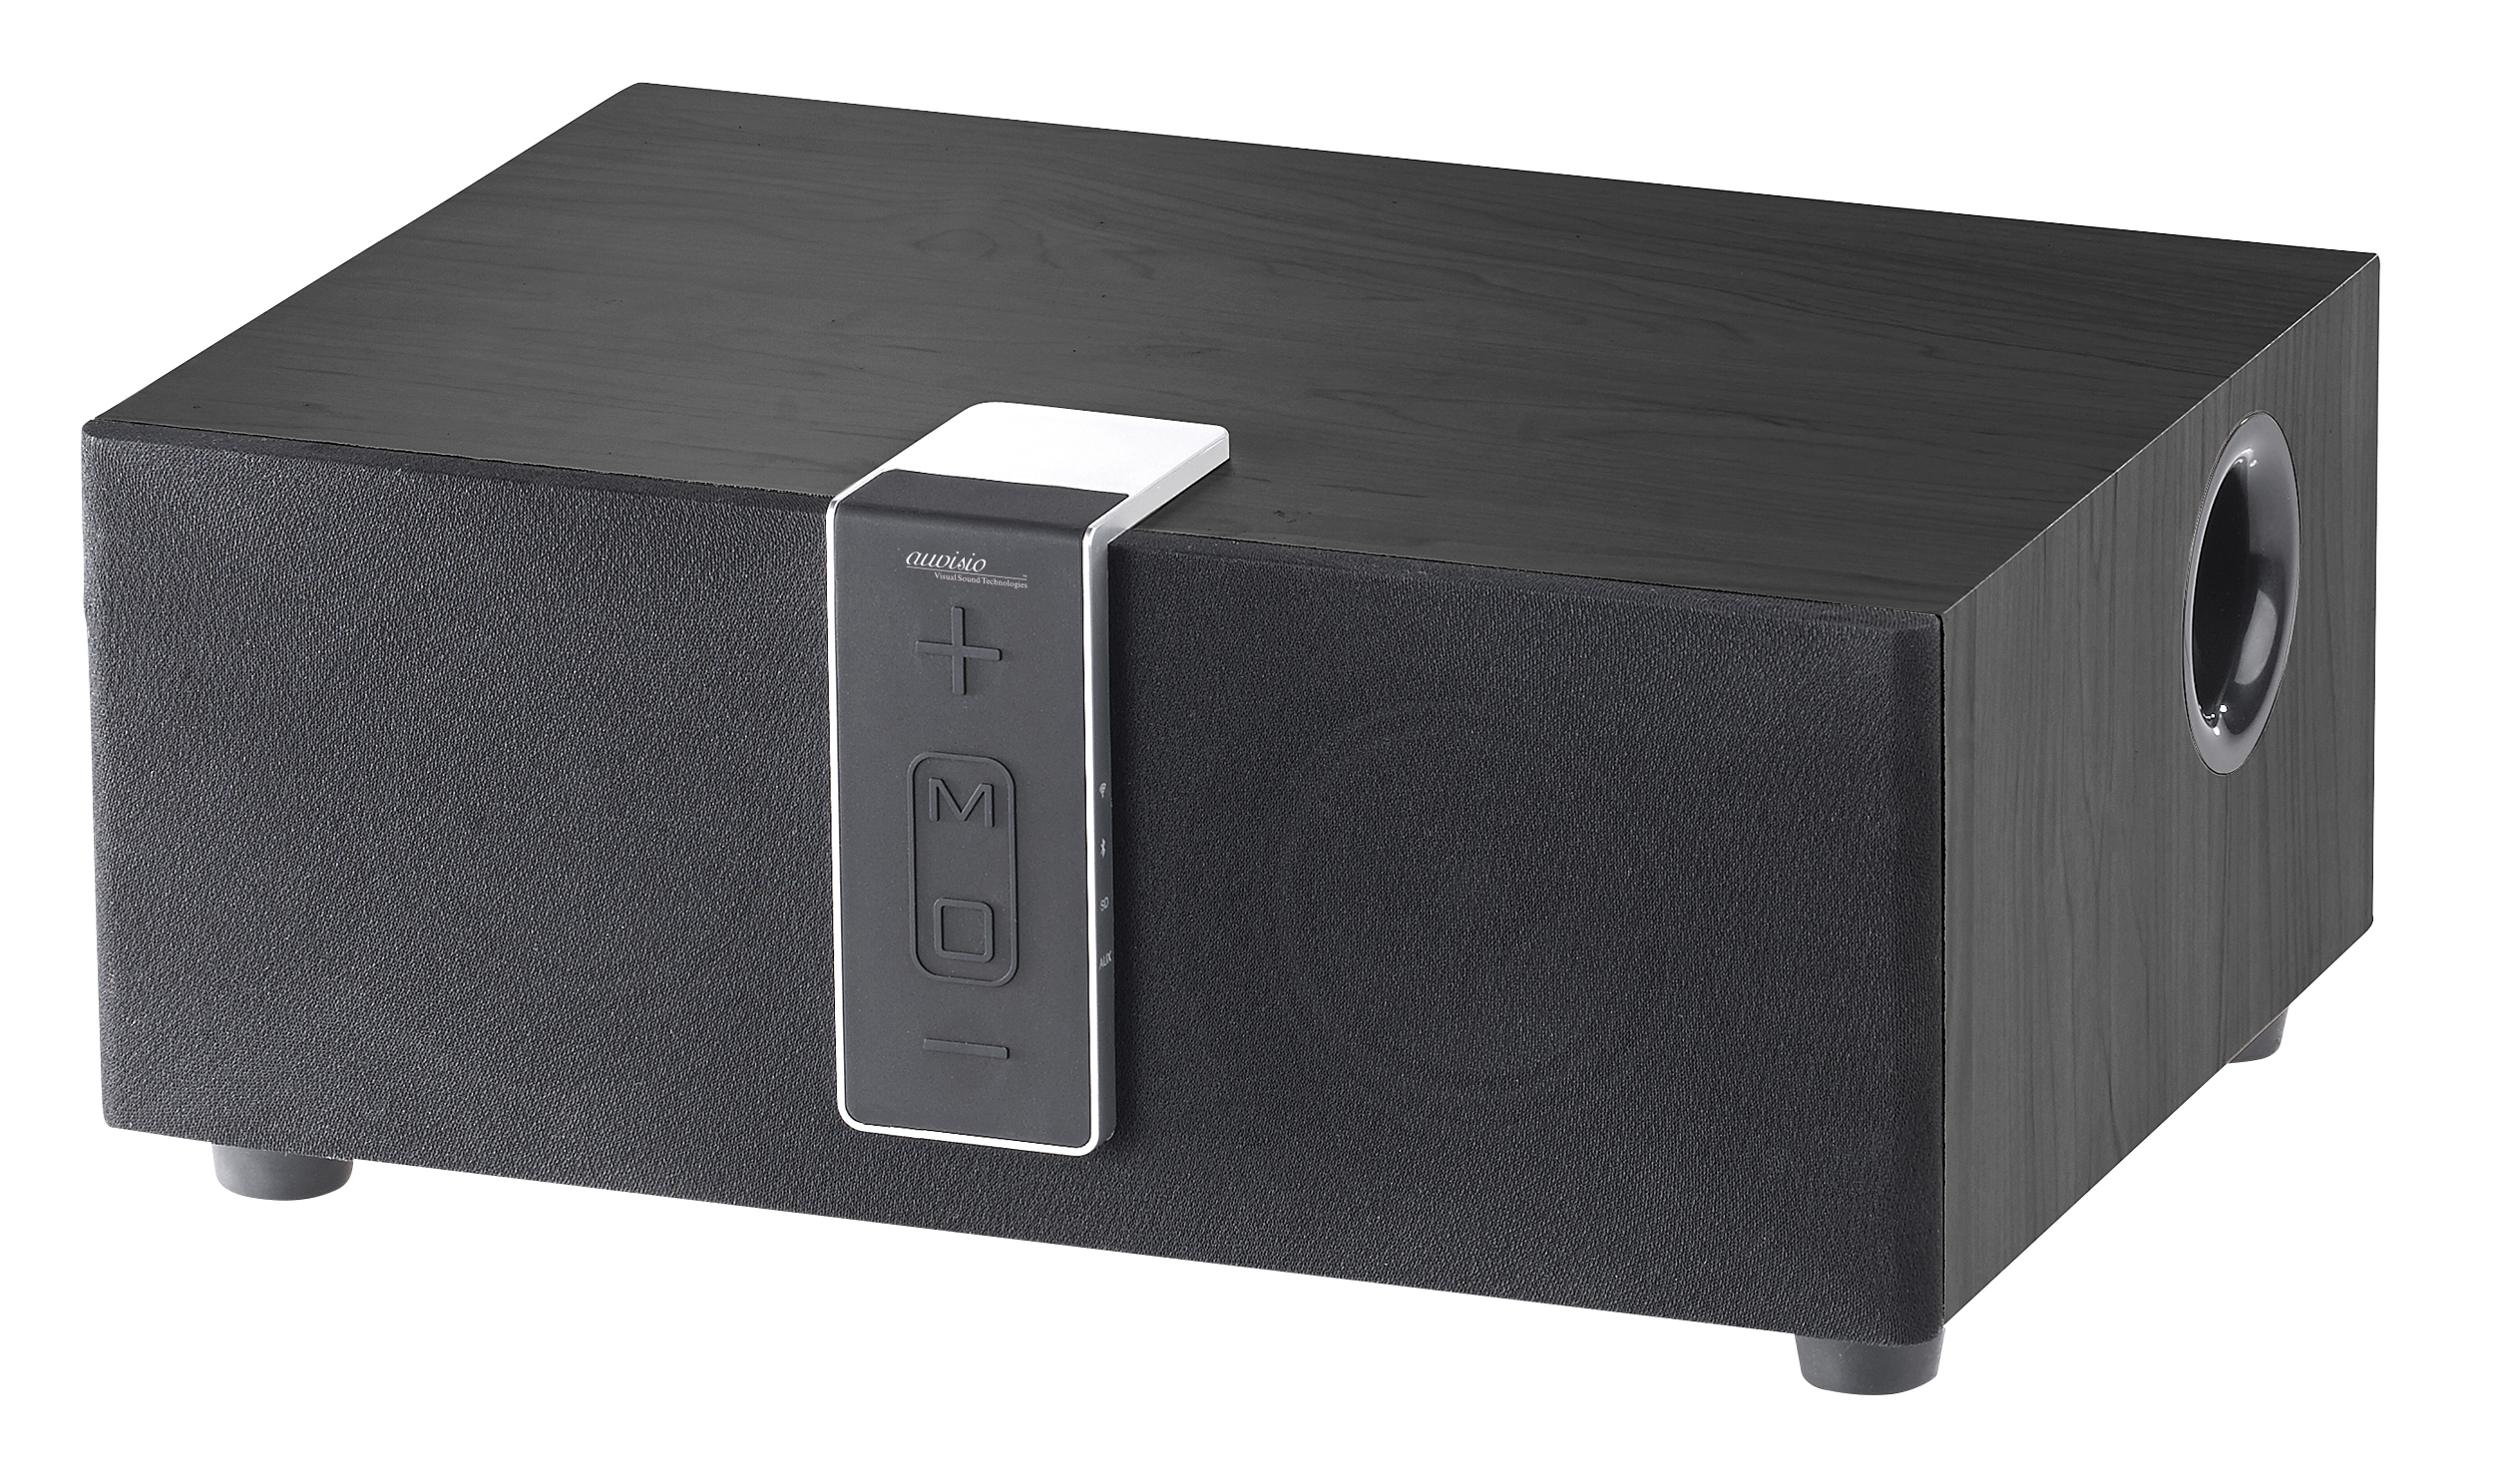 auvisio wlan multiroom lautsprecher mit subwoofer bt airplay 80 w. Black Bedroom Furniture Sets. Home Design Ideas